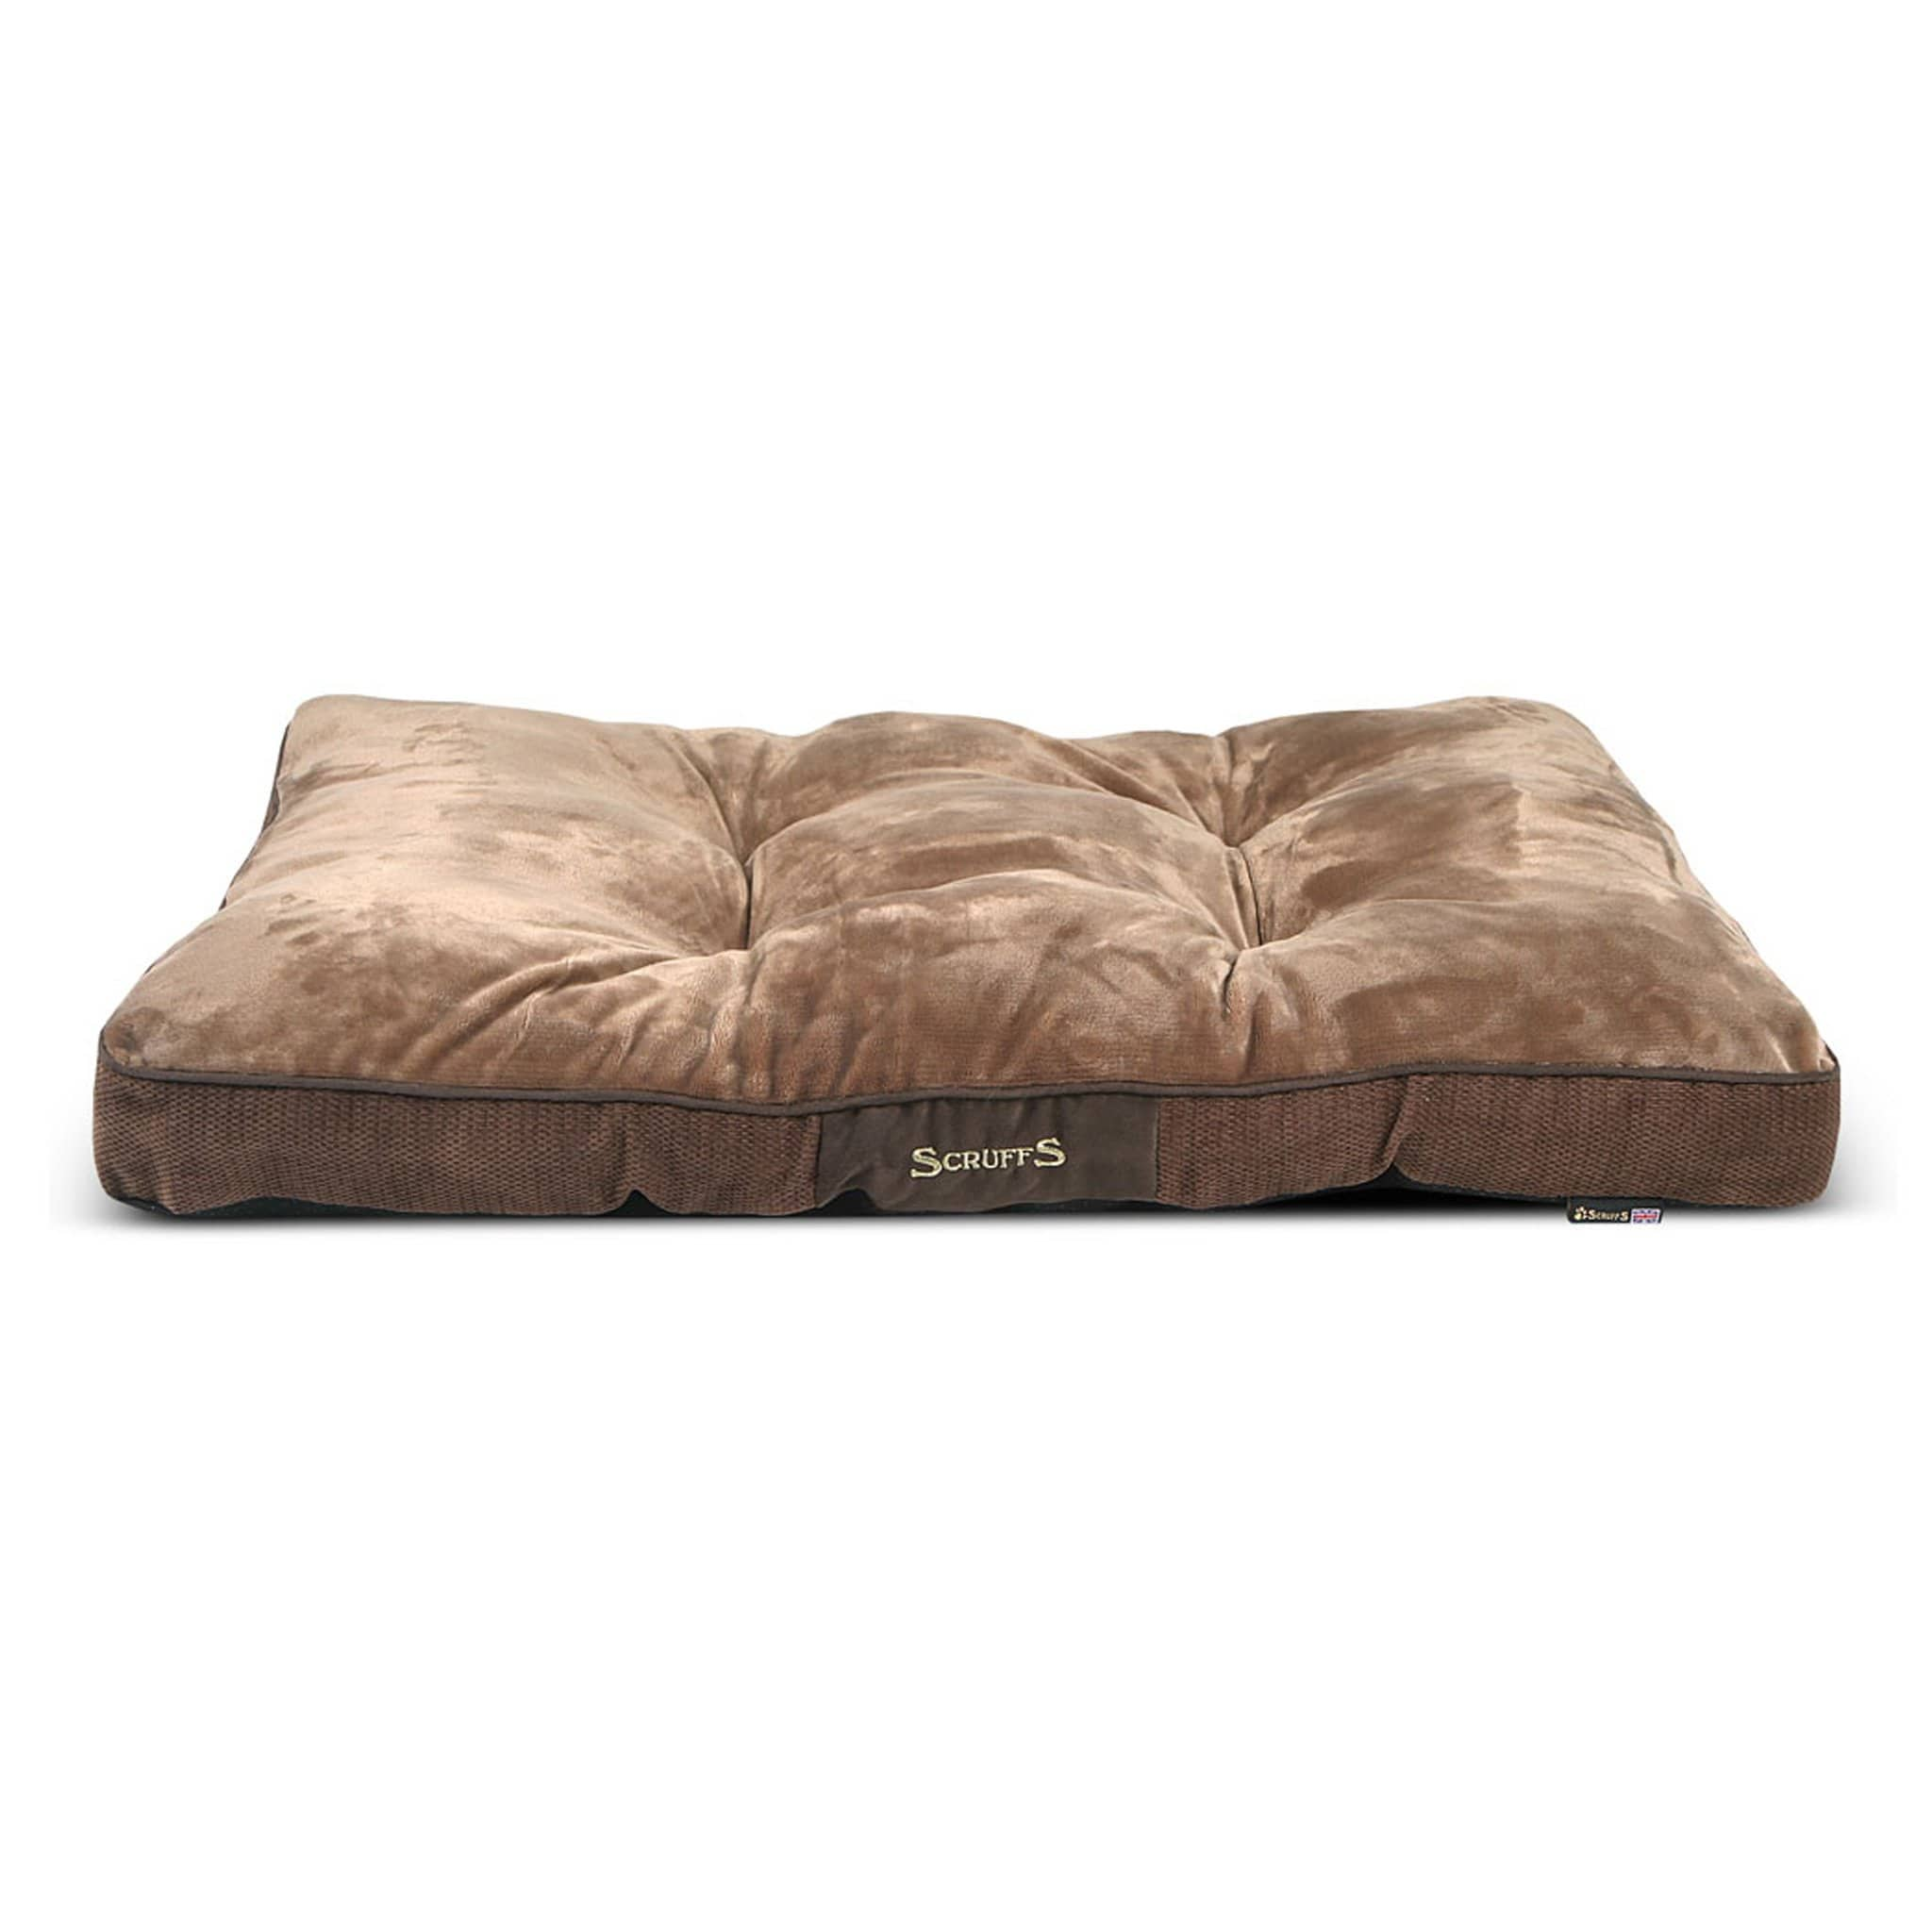 Scruffs Chester Dog Mattress 18223 Chocolate Brown